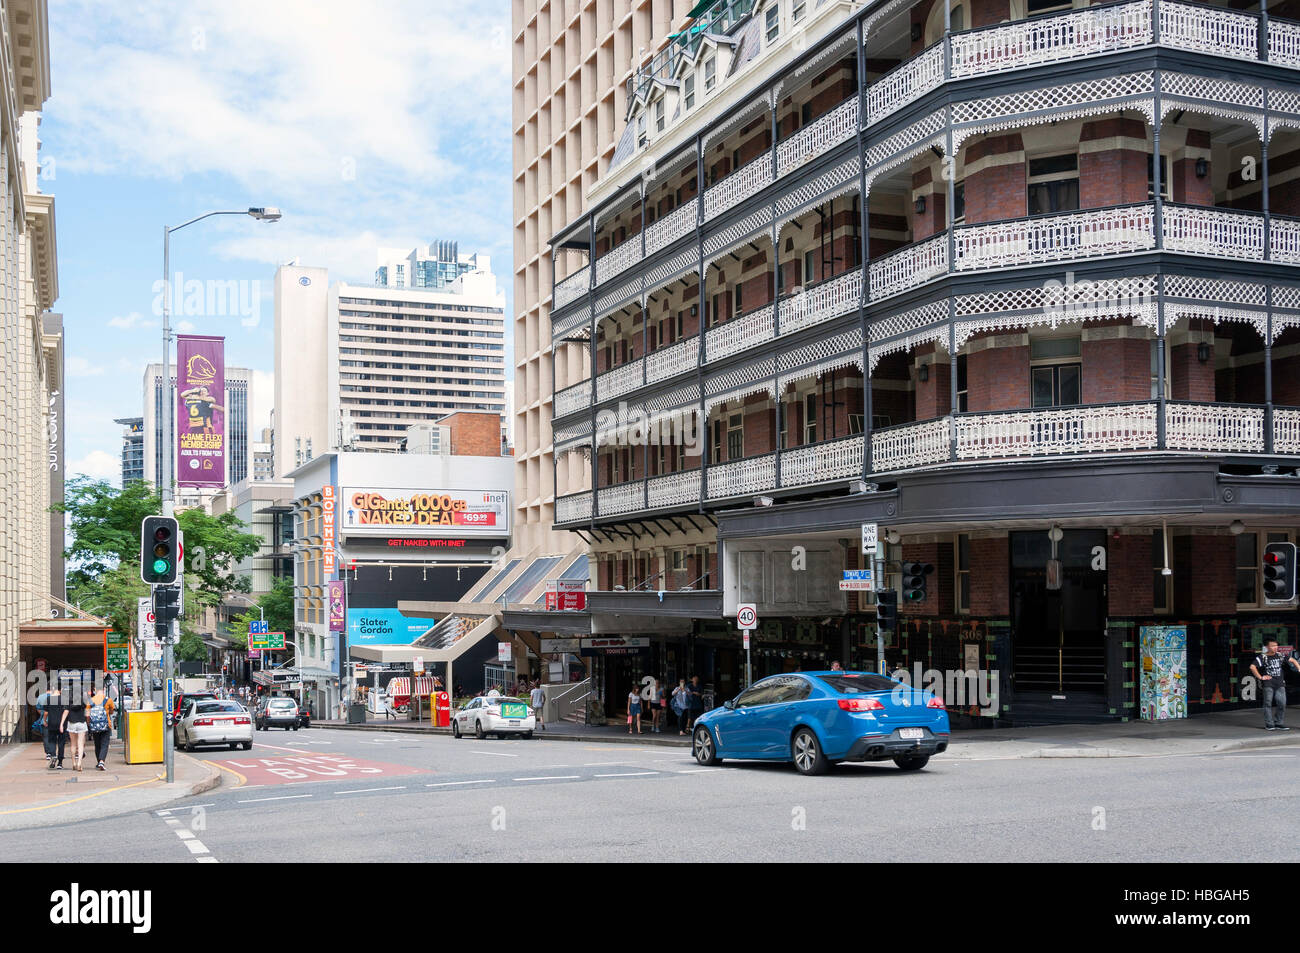 Edward Street, Brisbane City, Brisbane, Queensland, Australia - Stock Image